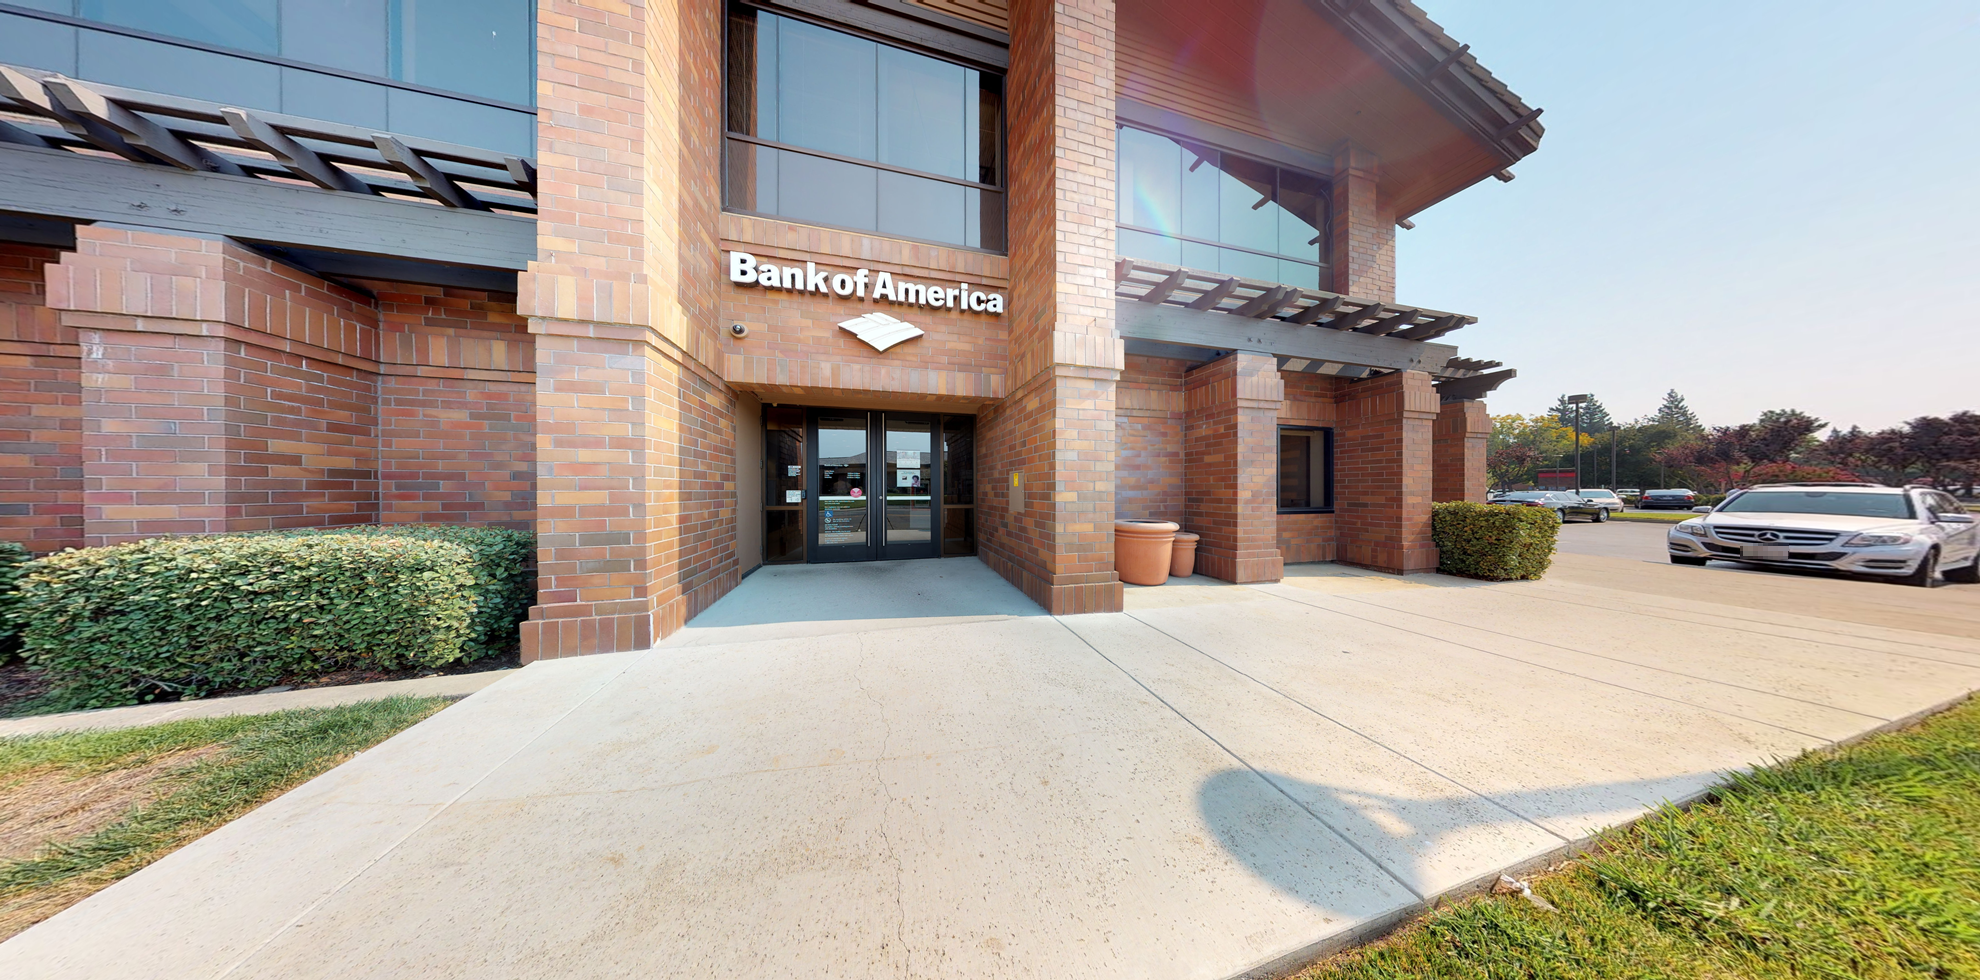 Bank of America financial center with drive-thru ATM | 11201 Gold Express Dr STE 100, Gold River, CA 95670